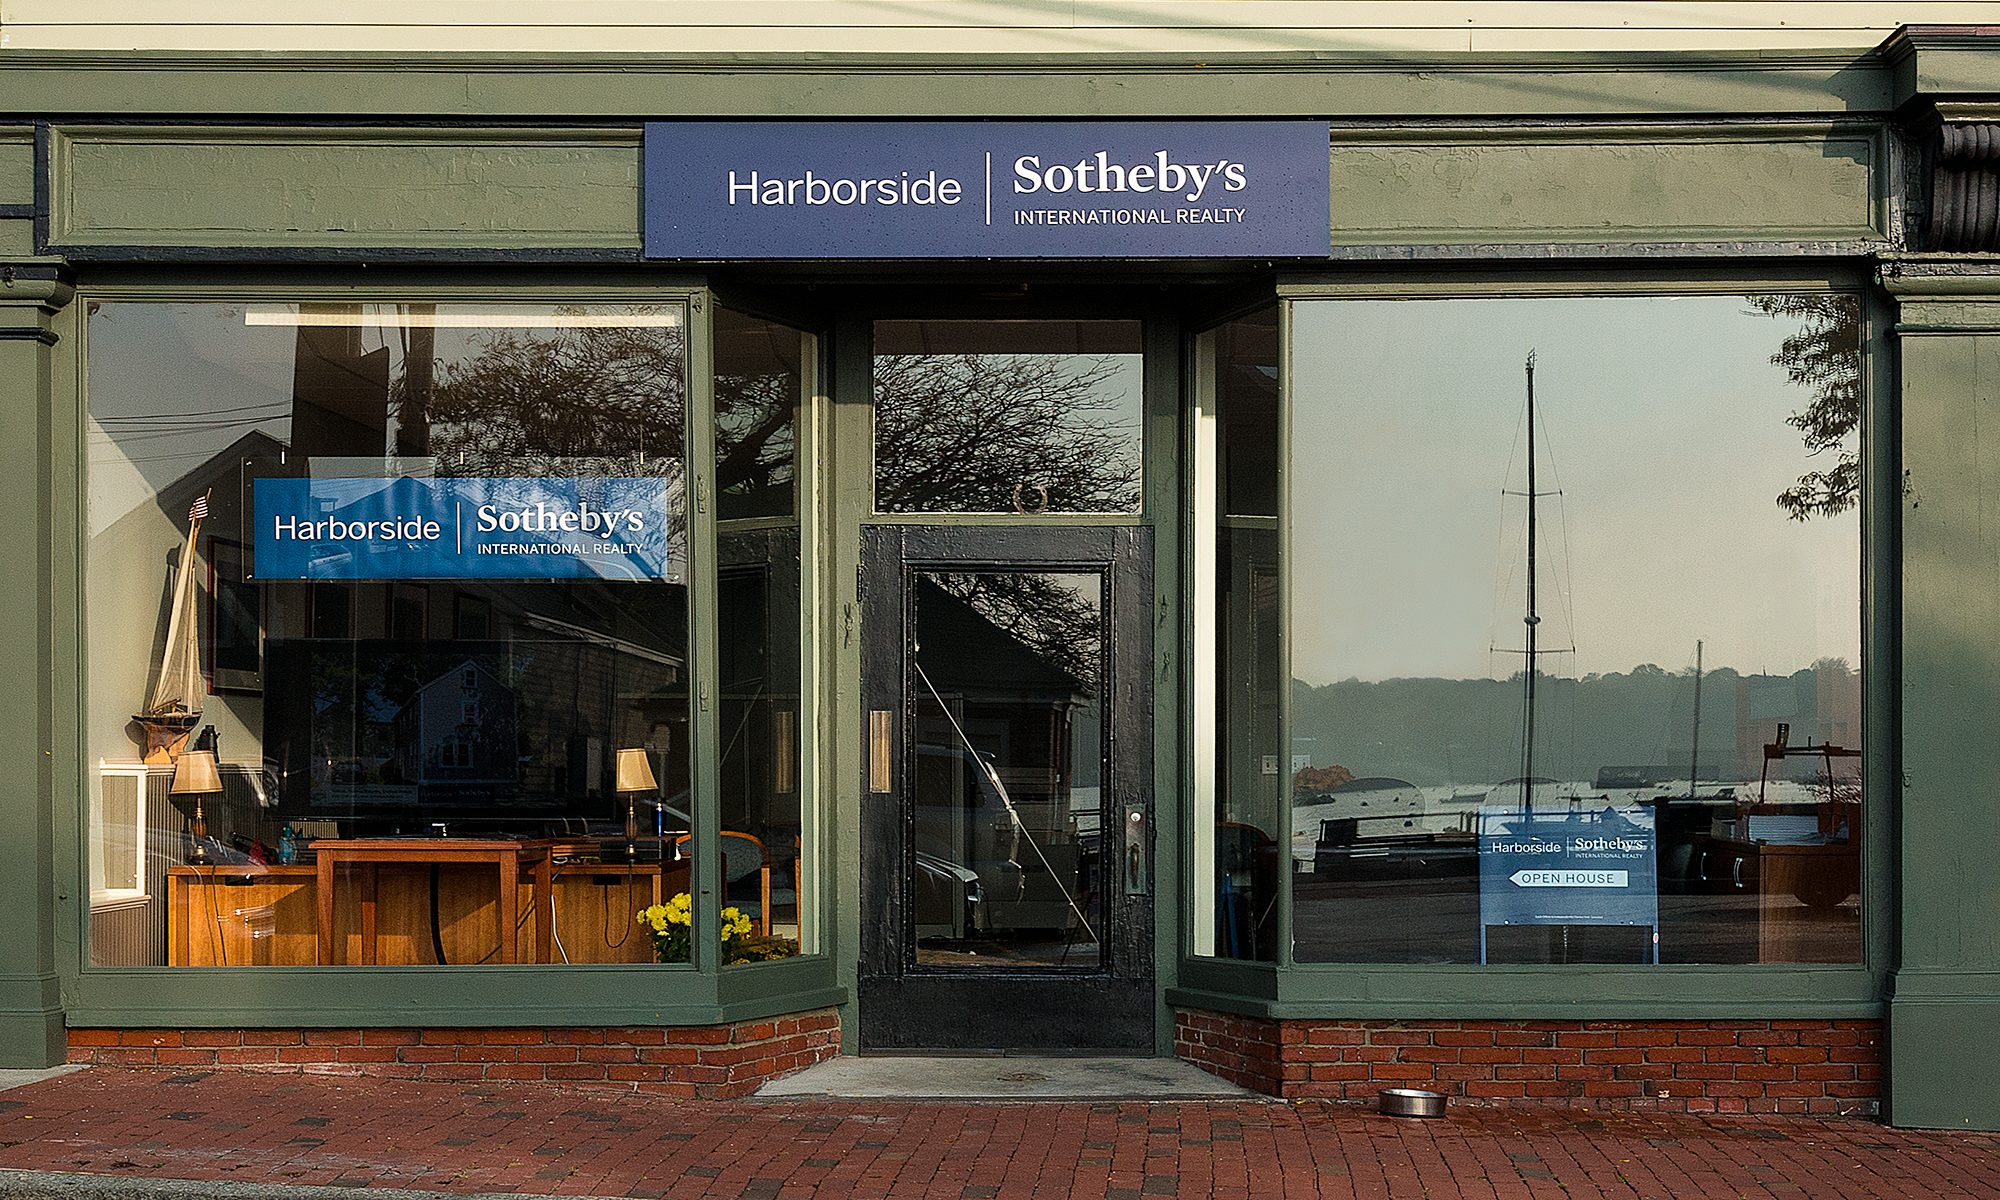 Office Harborside Sotheby's International Realty Photo